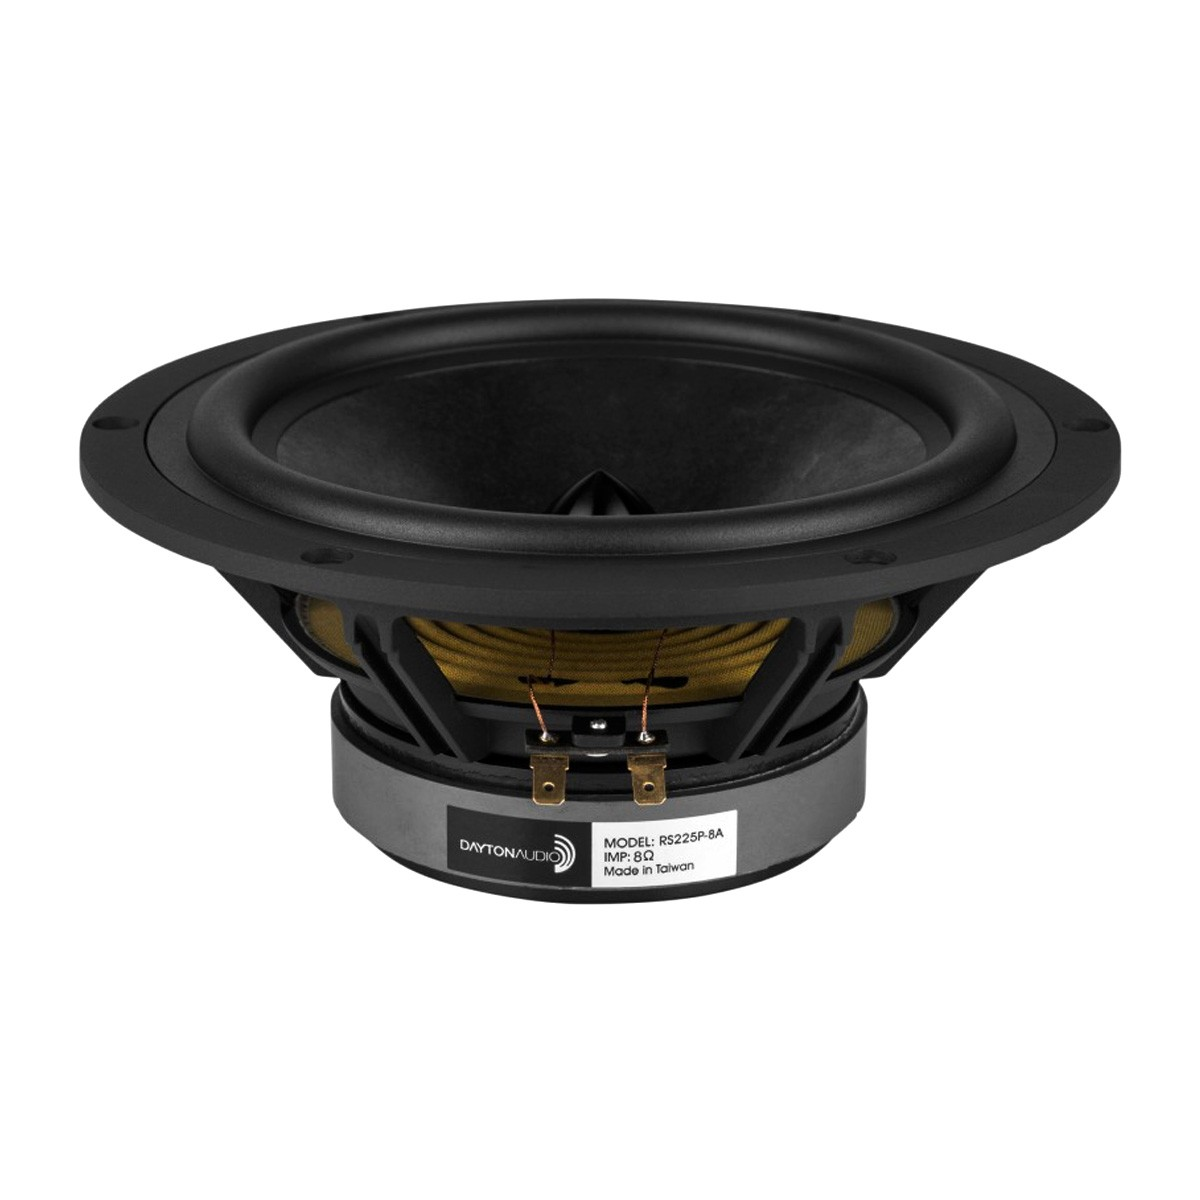 DAYTON AUDIO RS225P-8A Reference Series Speaker Driver Woofer / Midbass 70W 8 Ohm 88dB 40Hz - 4500Hz Ø20.3cm